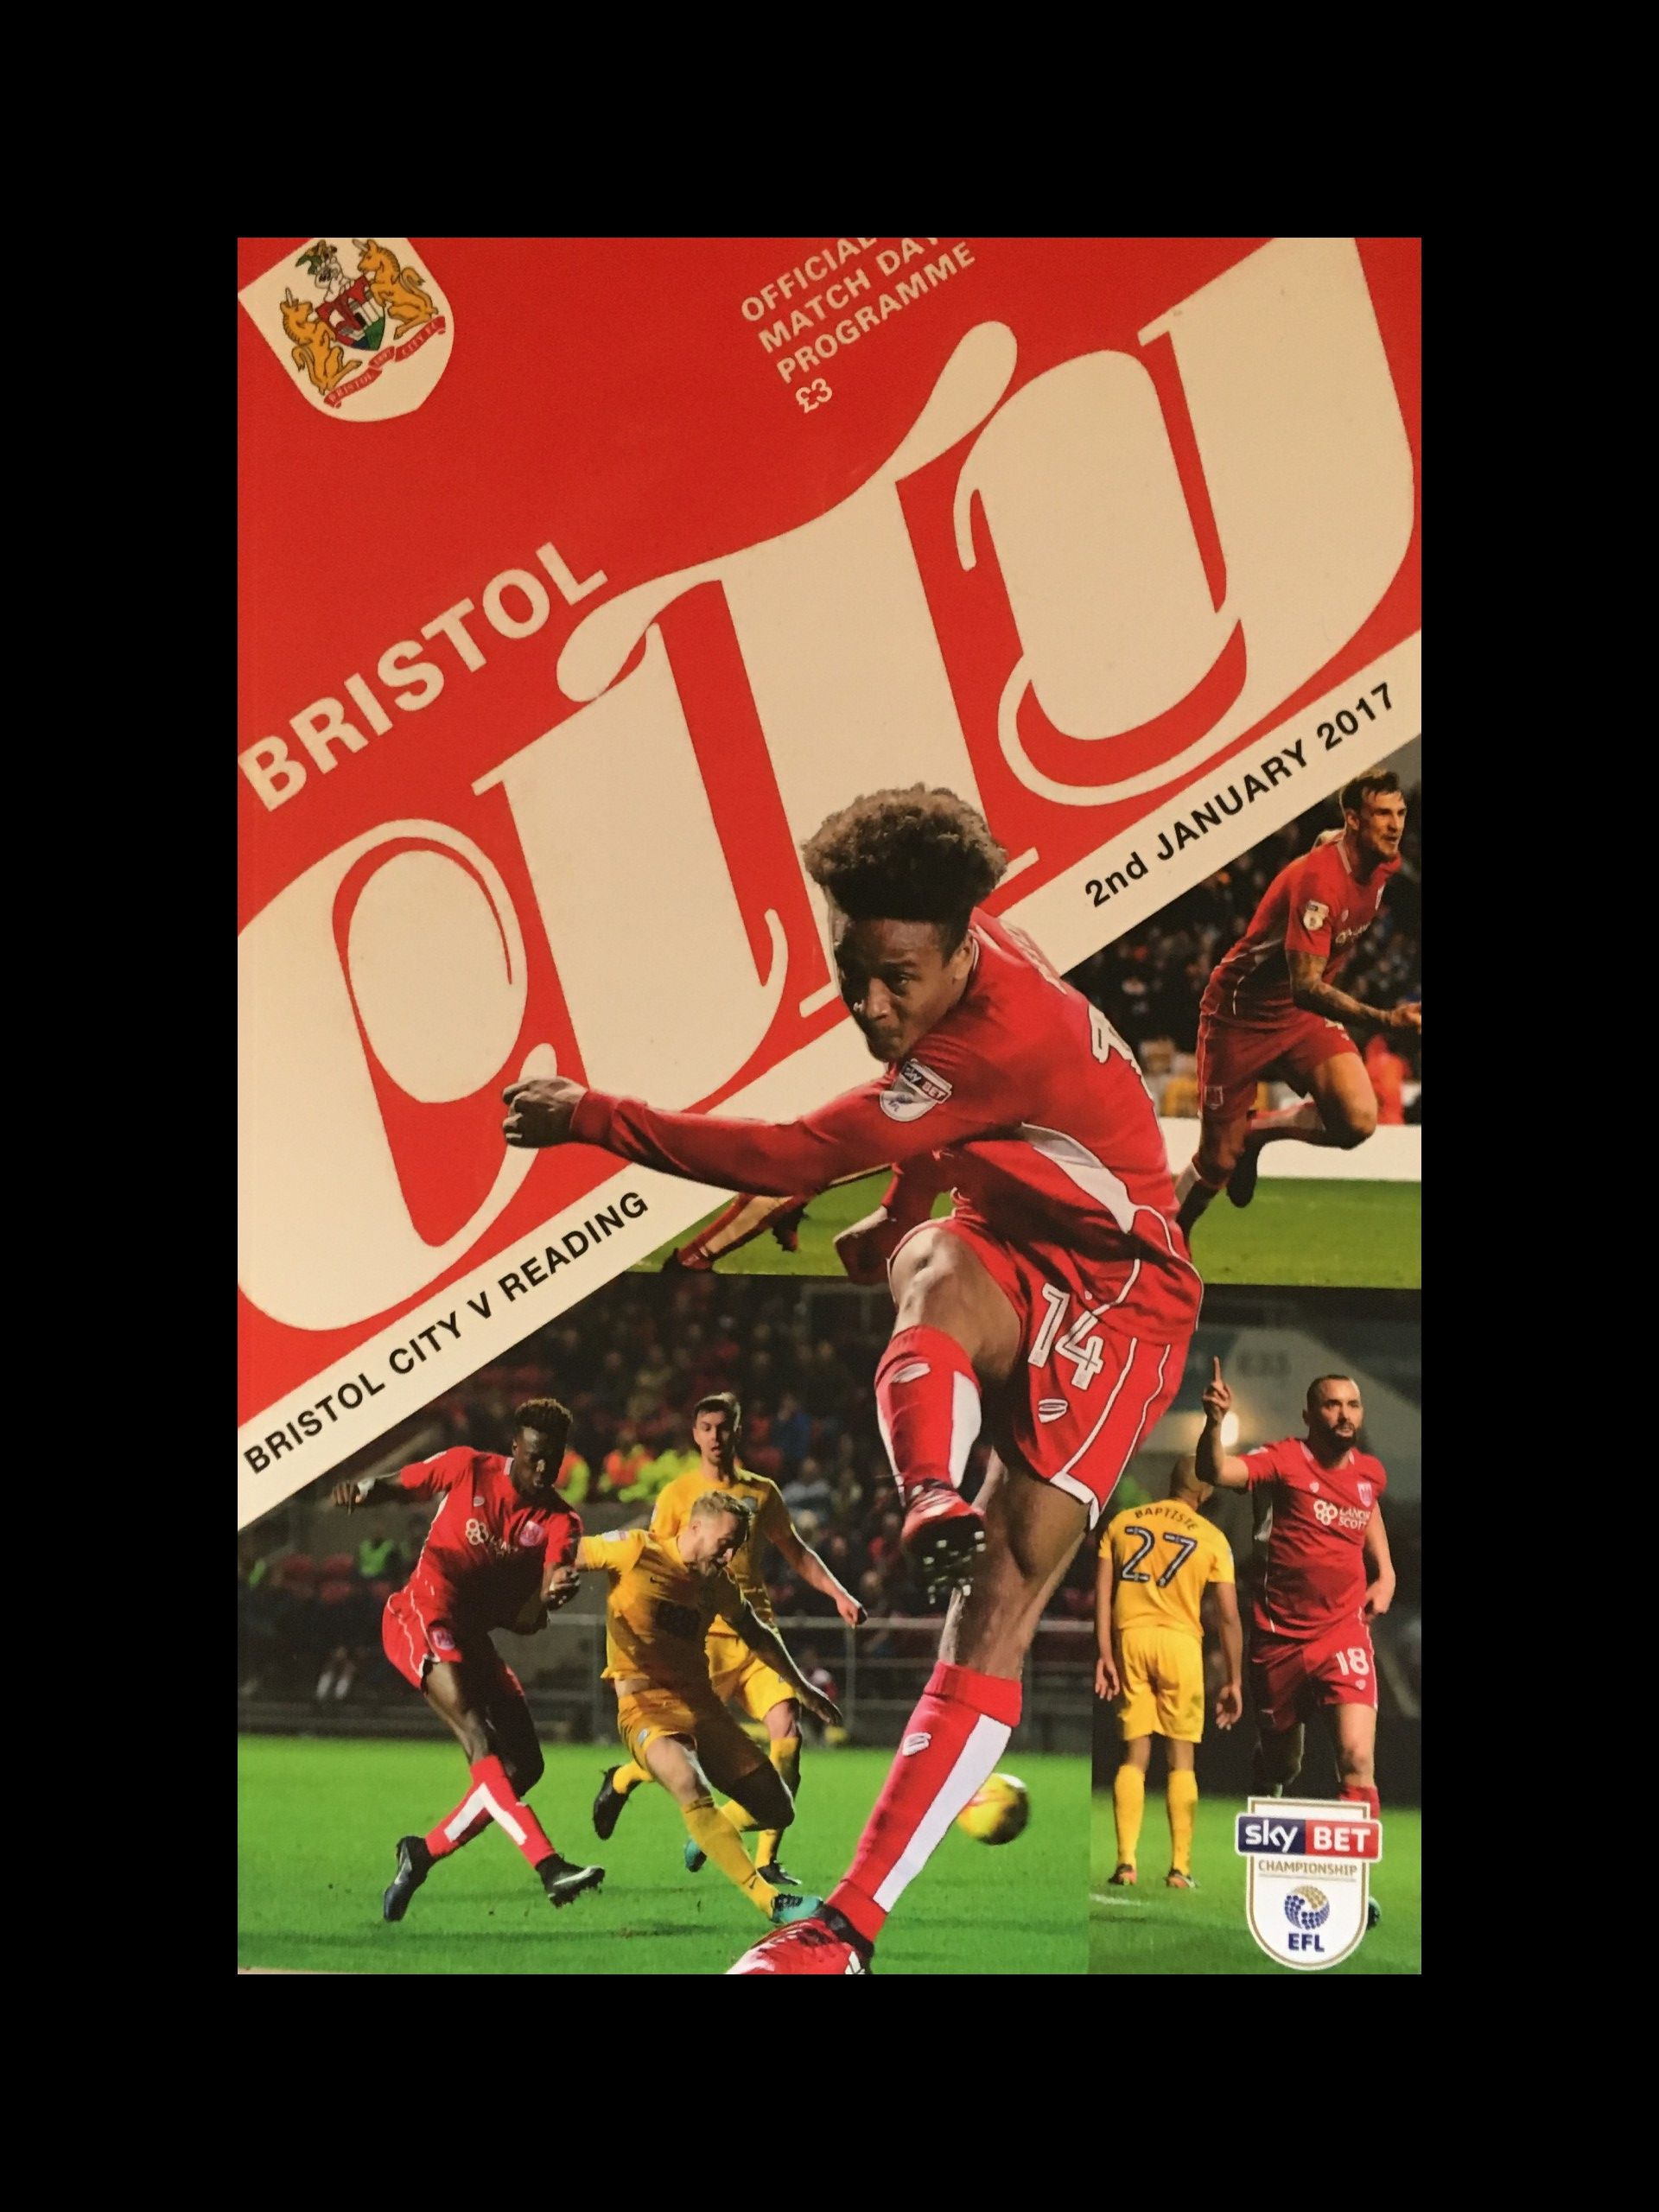 Bristol City v Reading 02-01-2017 Programme